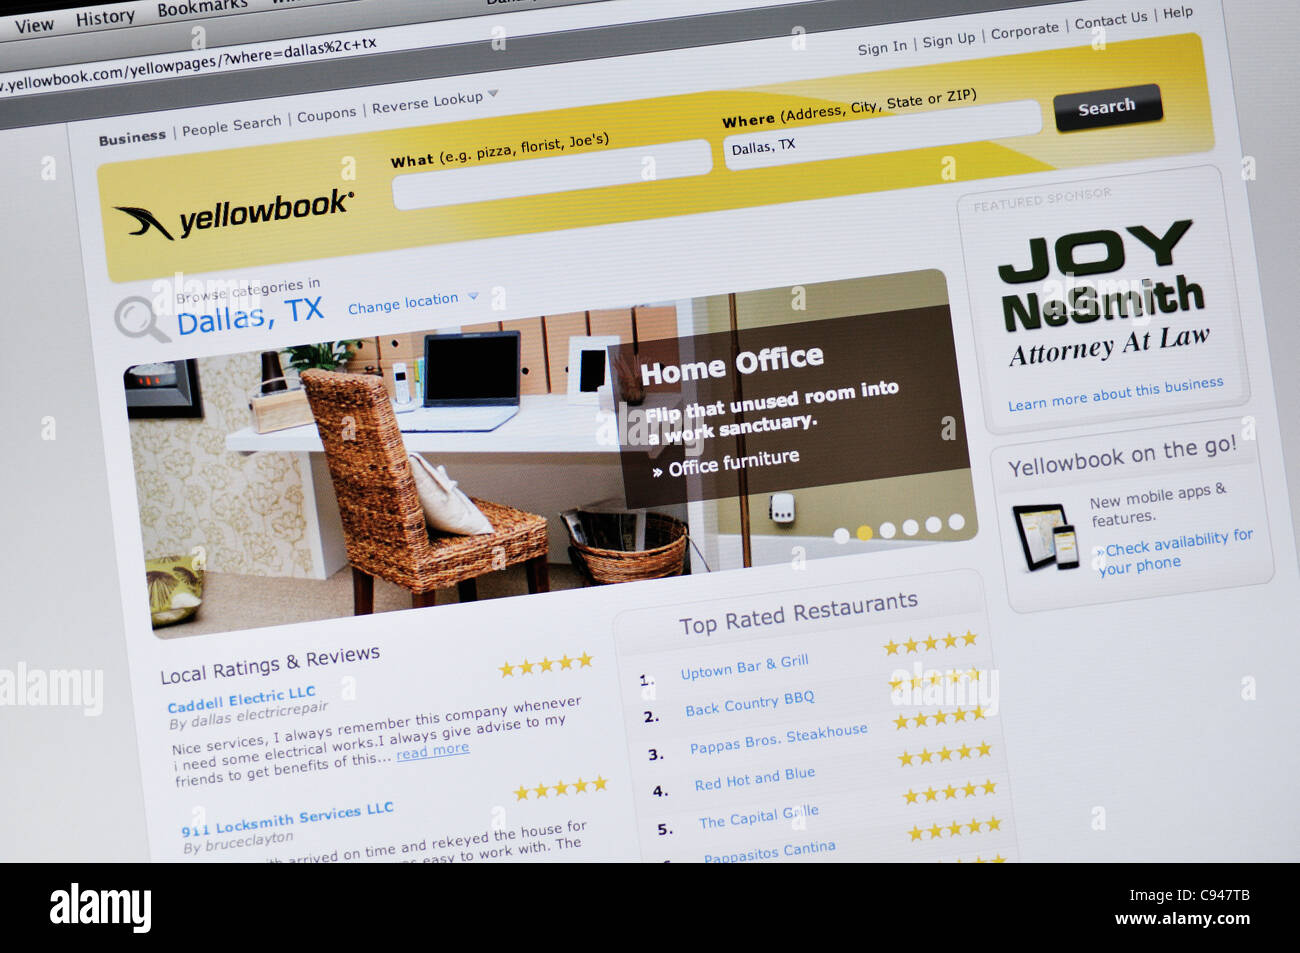 Yellow Pages phonebook website Stock Photo: 40046619 - Alamy